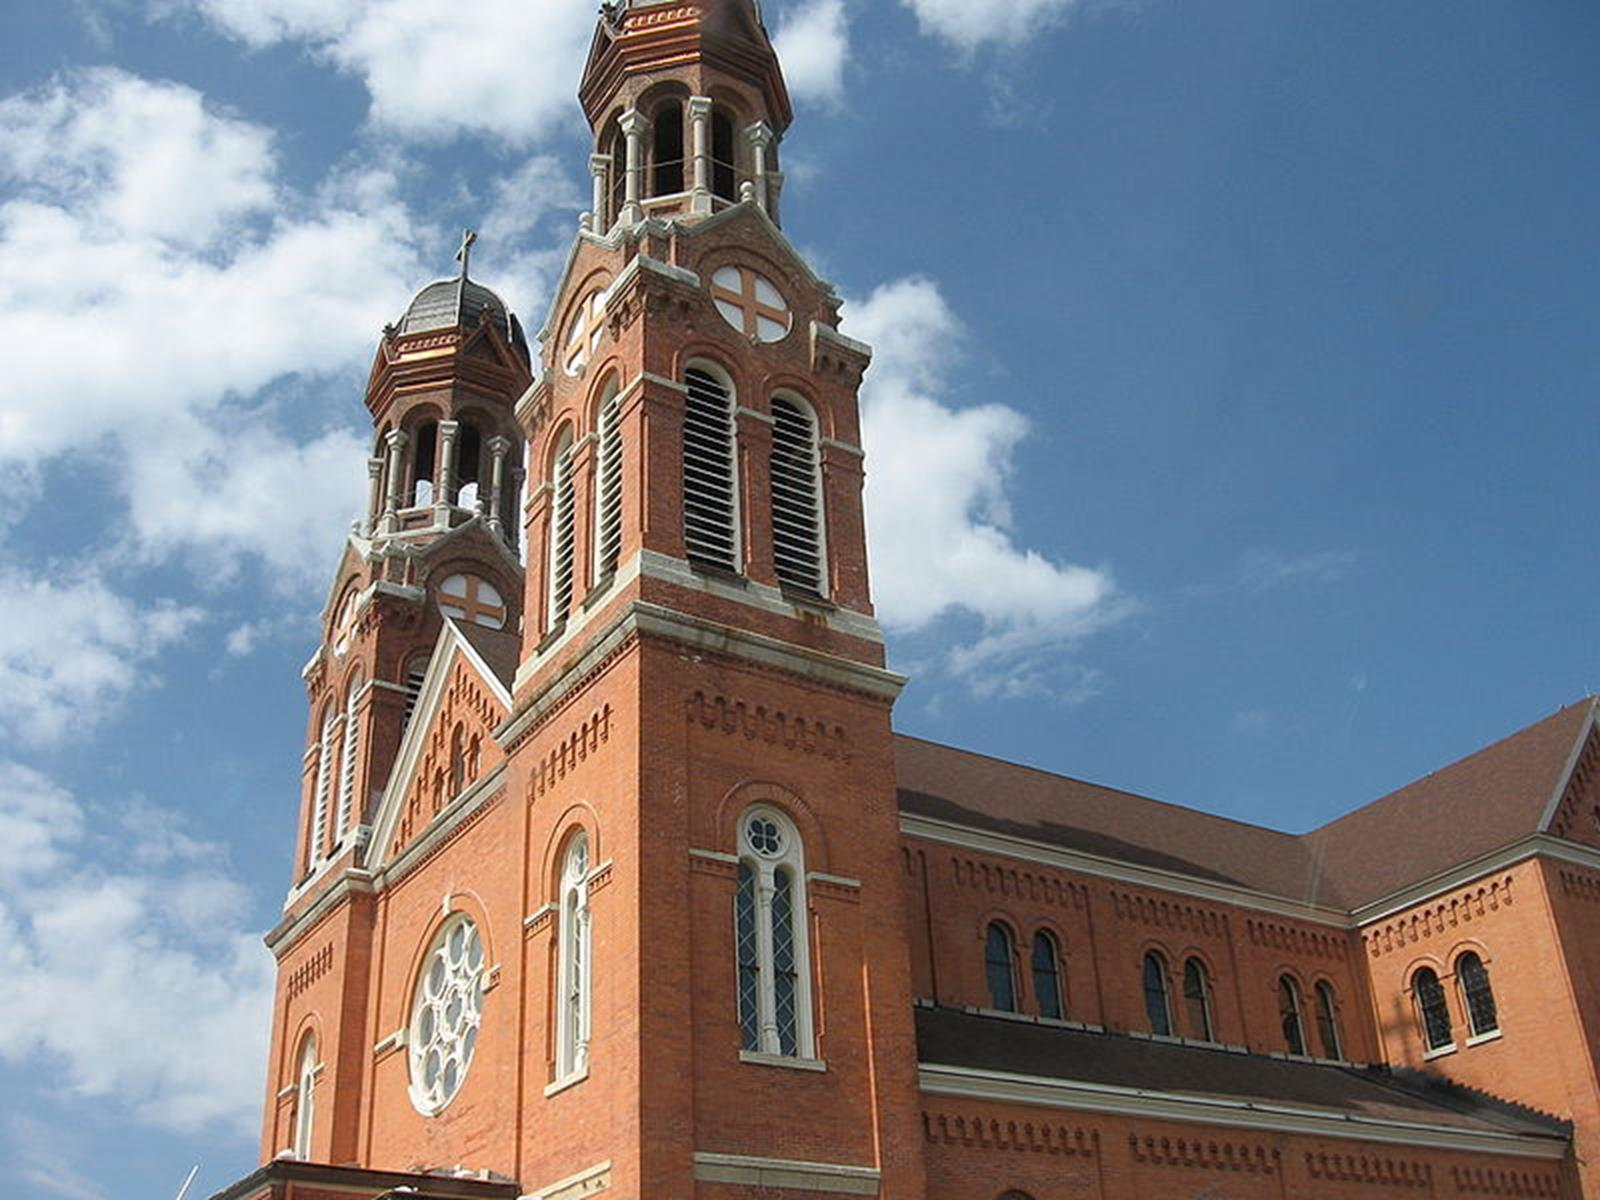 The St. Frances Green Bay Cathedral